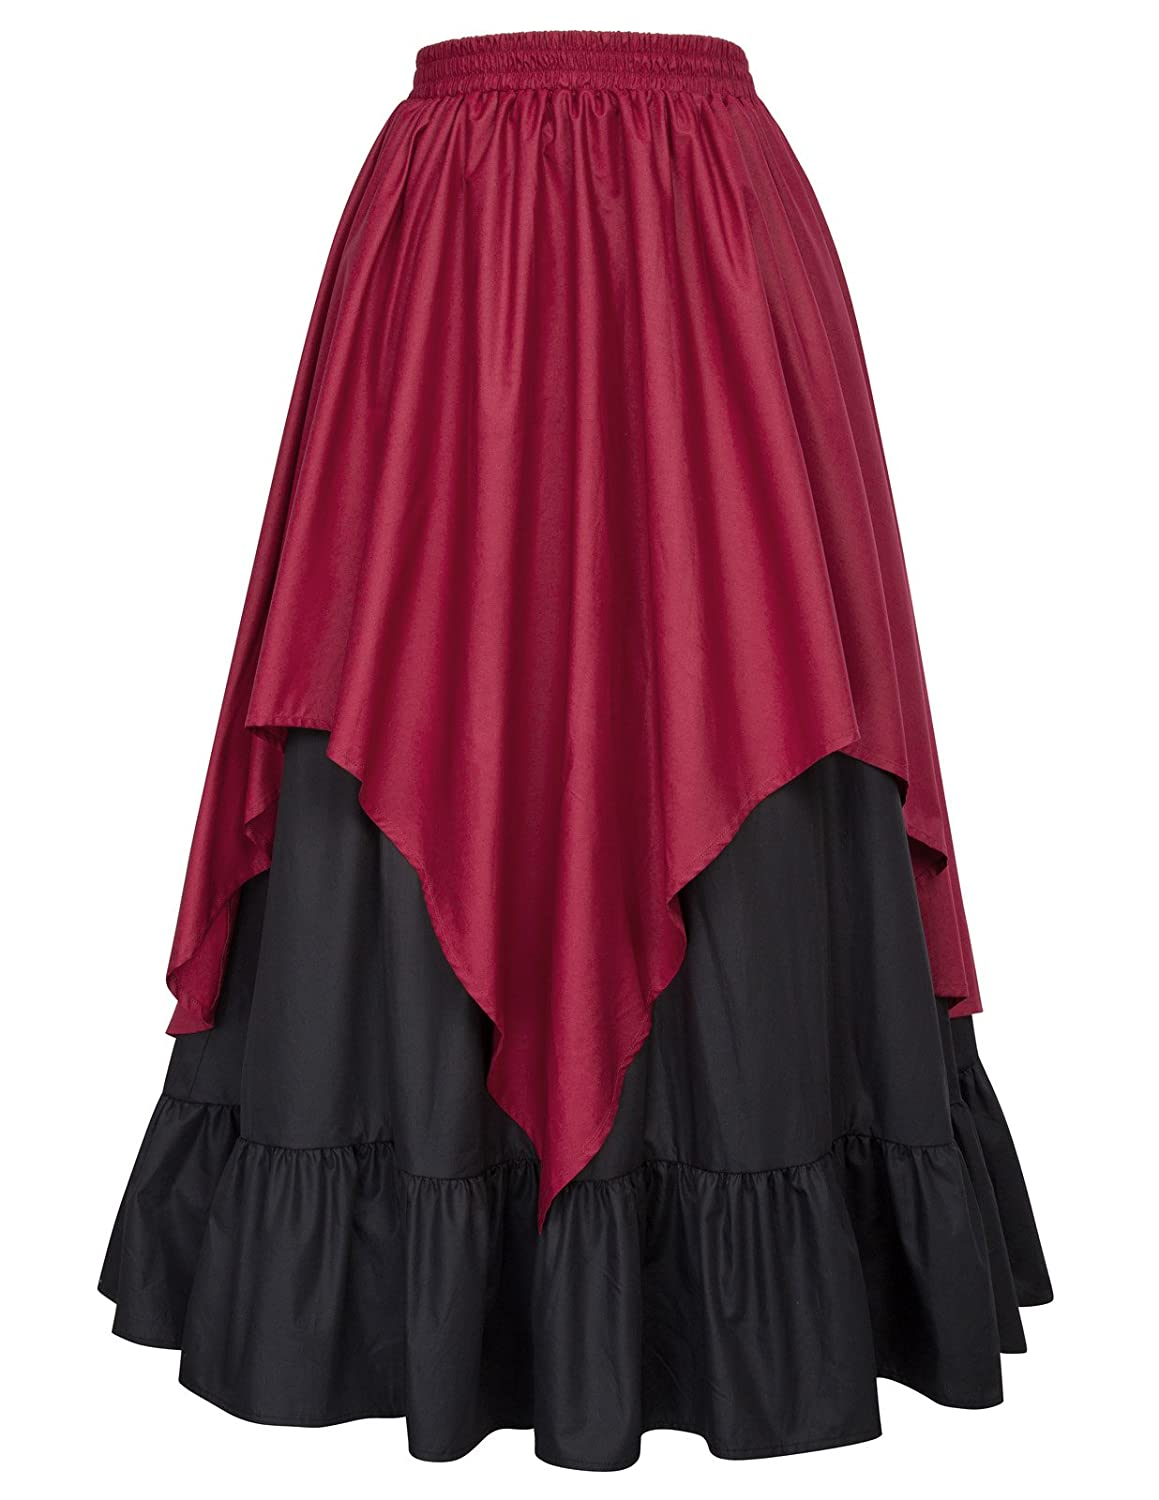 Women's Renaissance Black and Wine Layered Bustle Style Skirt - DeluxeAdultCostumes.com